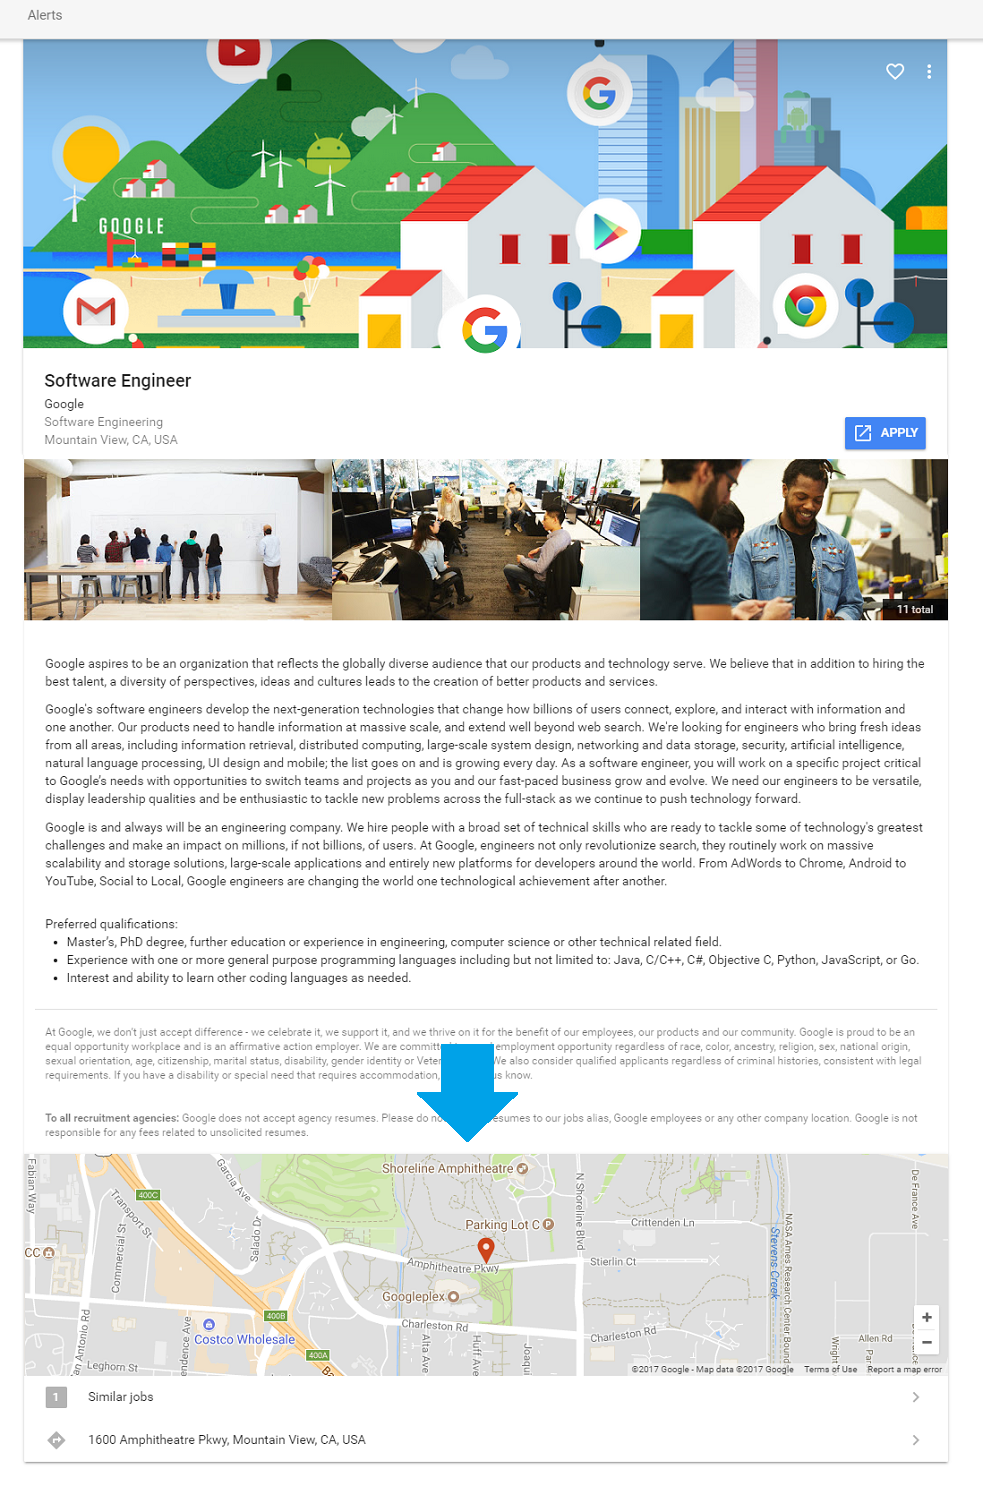 Map on Google Job Description